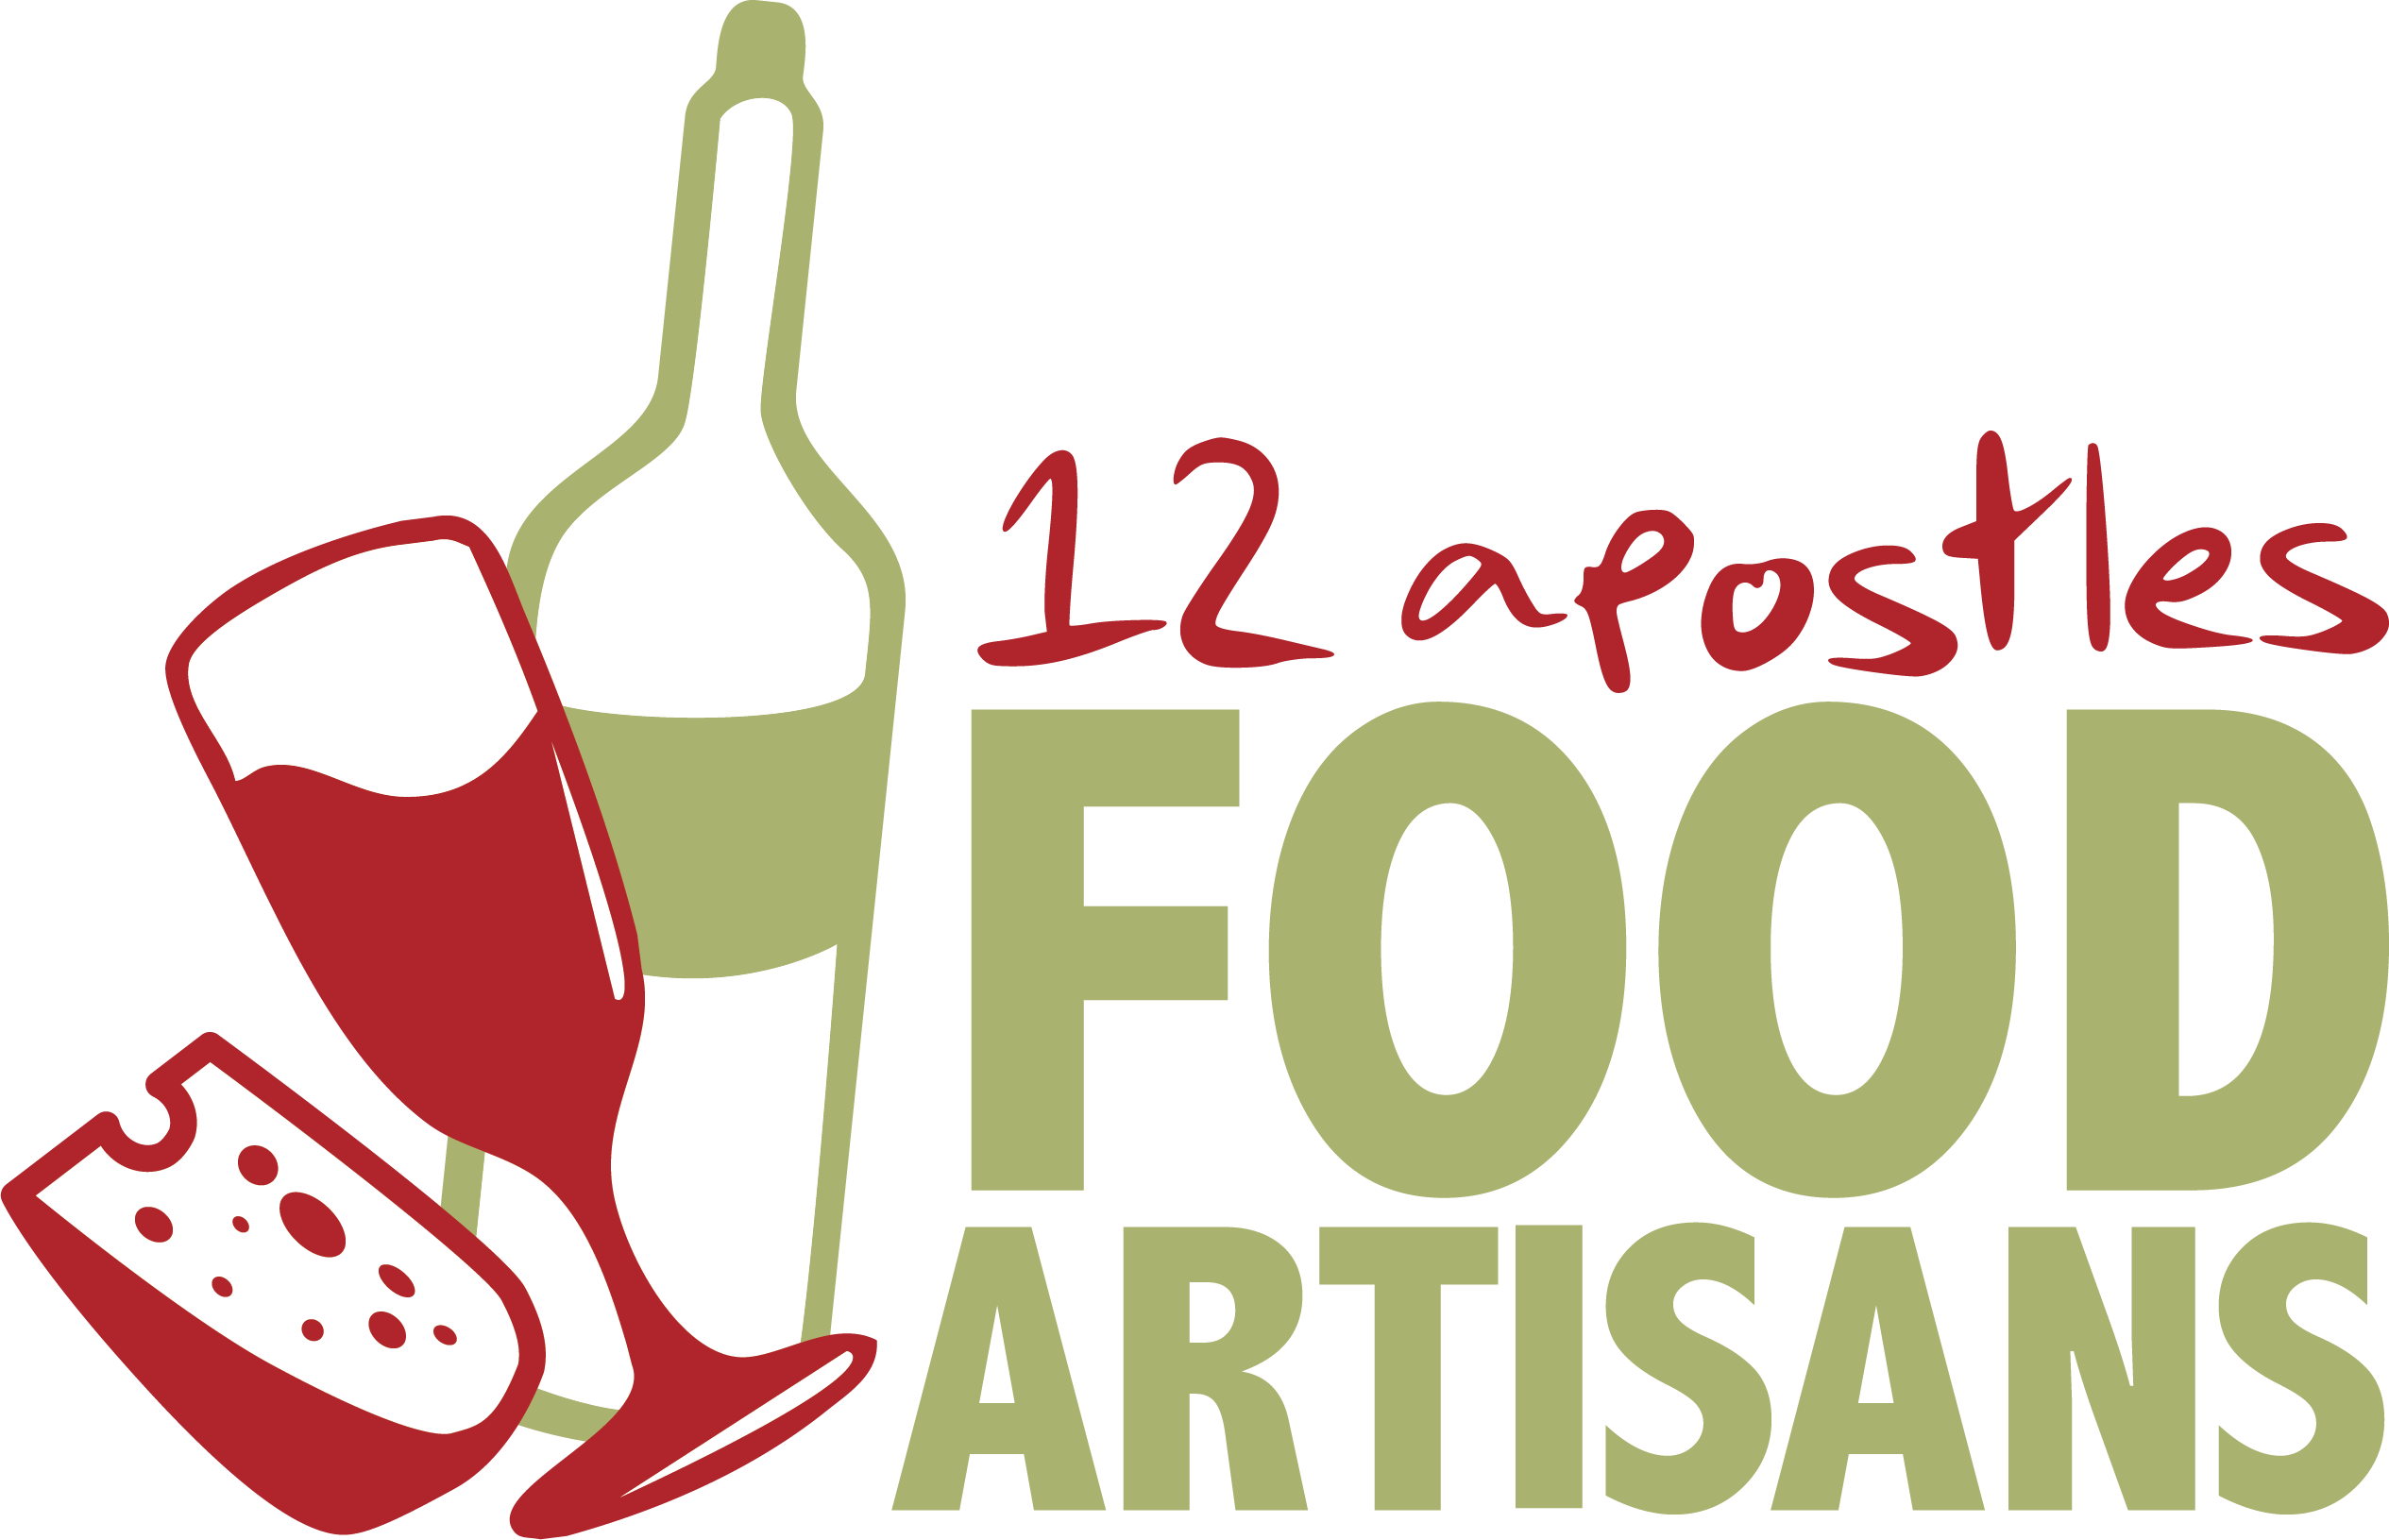 12Apostles_Food_Artisans_Logo_no tag